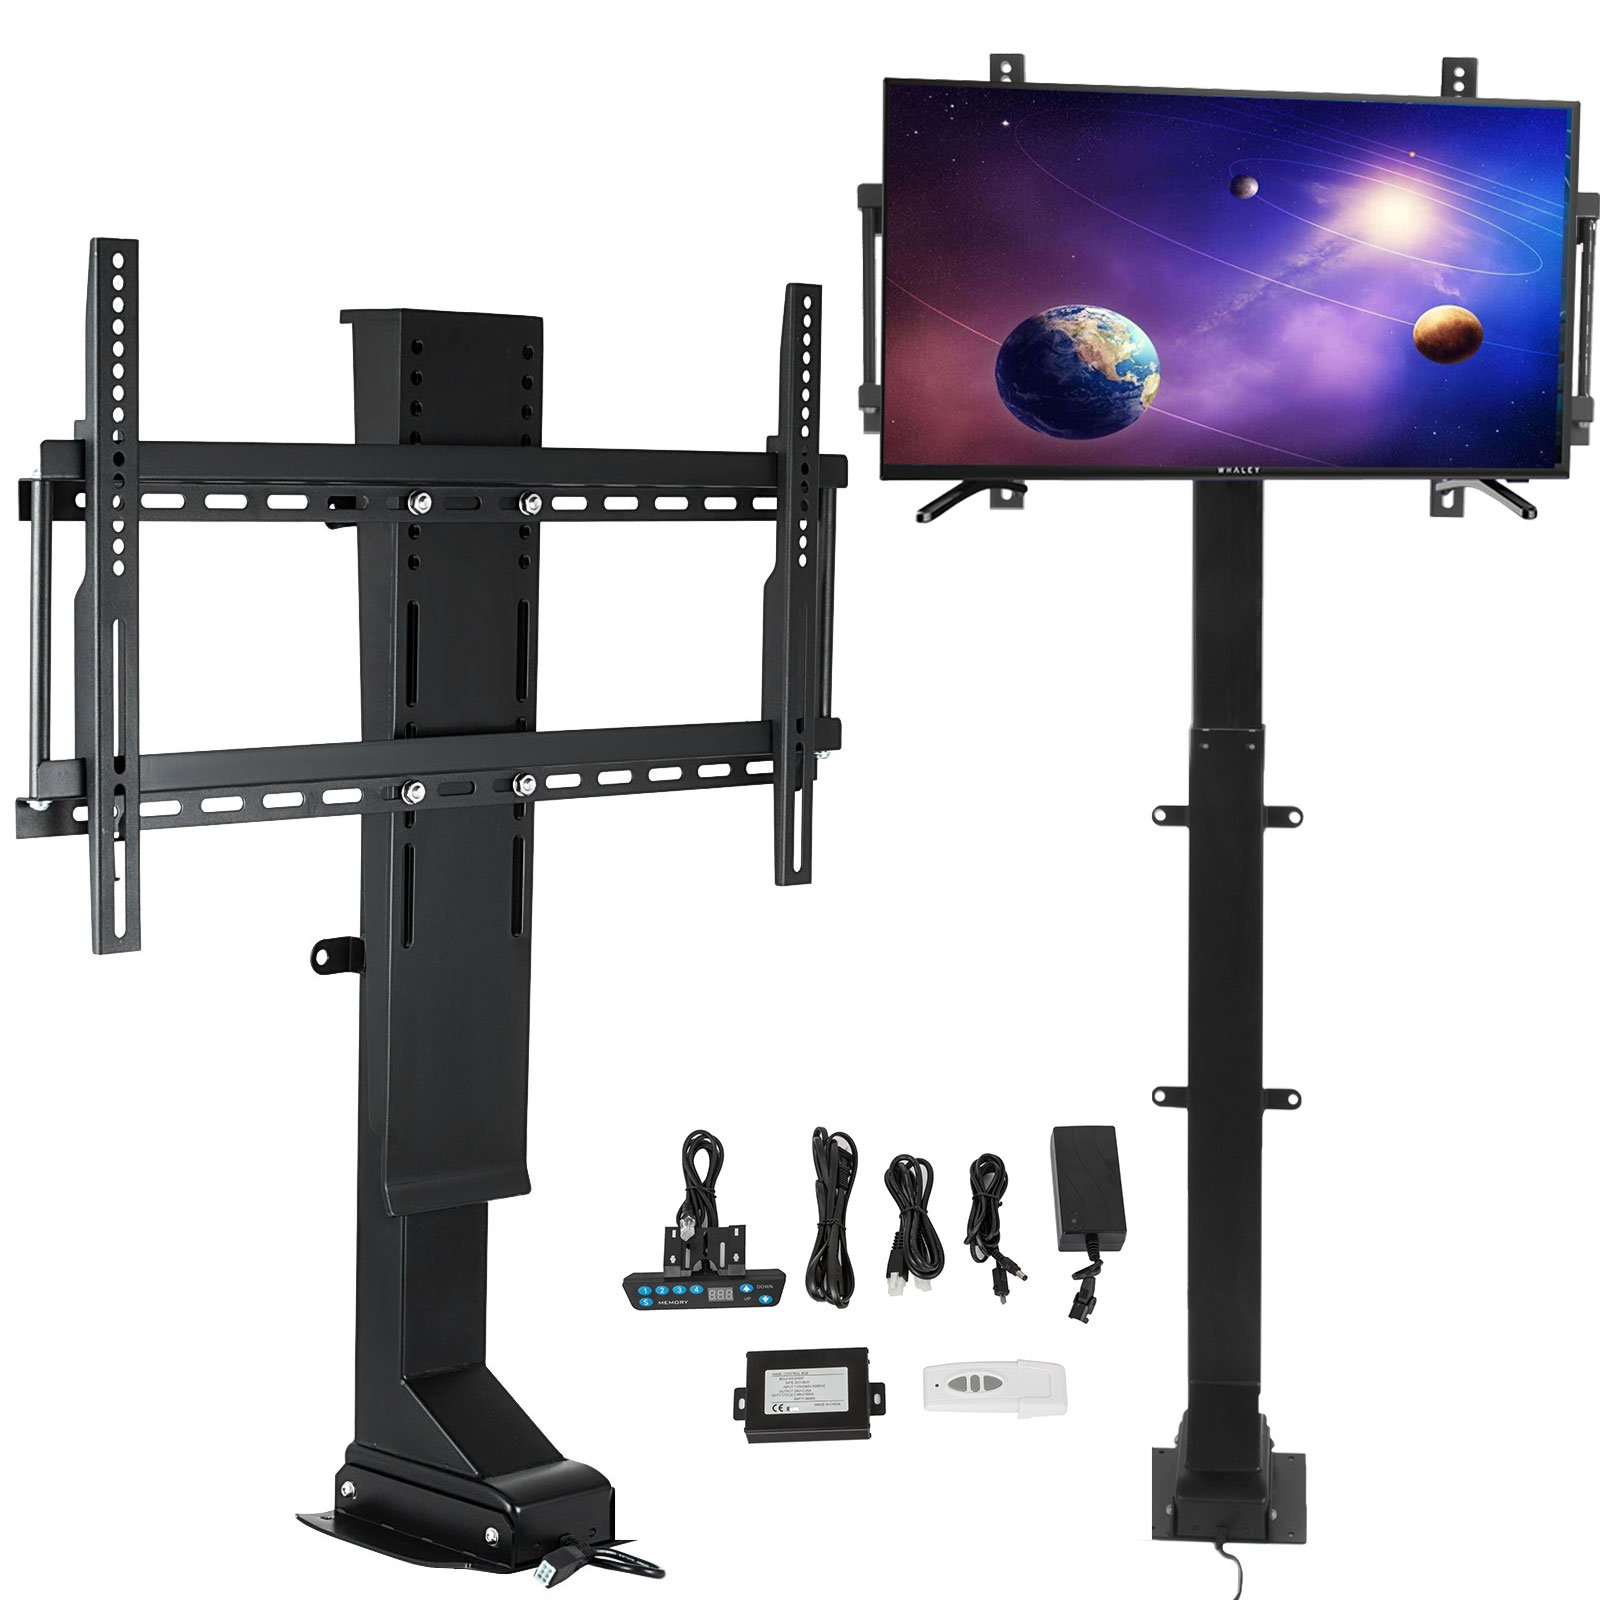 Happybuy Pro Swivel Motorized TV Lift 32''-70'' TV Lift Mechanism 1000mm Lift Mount Auto Lifting Adjustable Height with Remote Controller for Plasma LCD LED TV and Monitors (SHC-340)